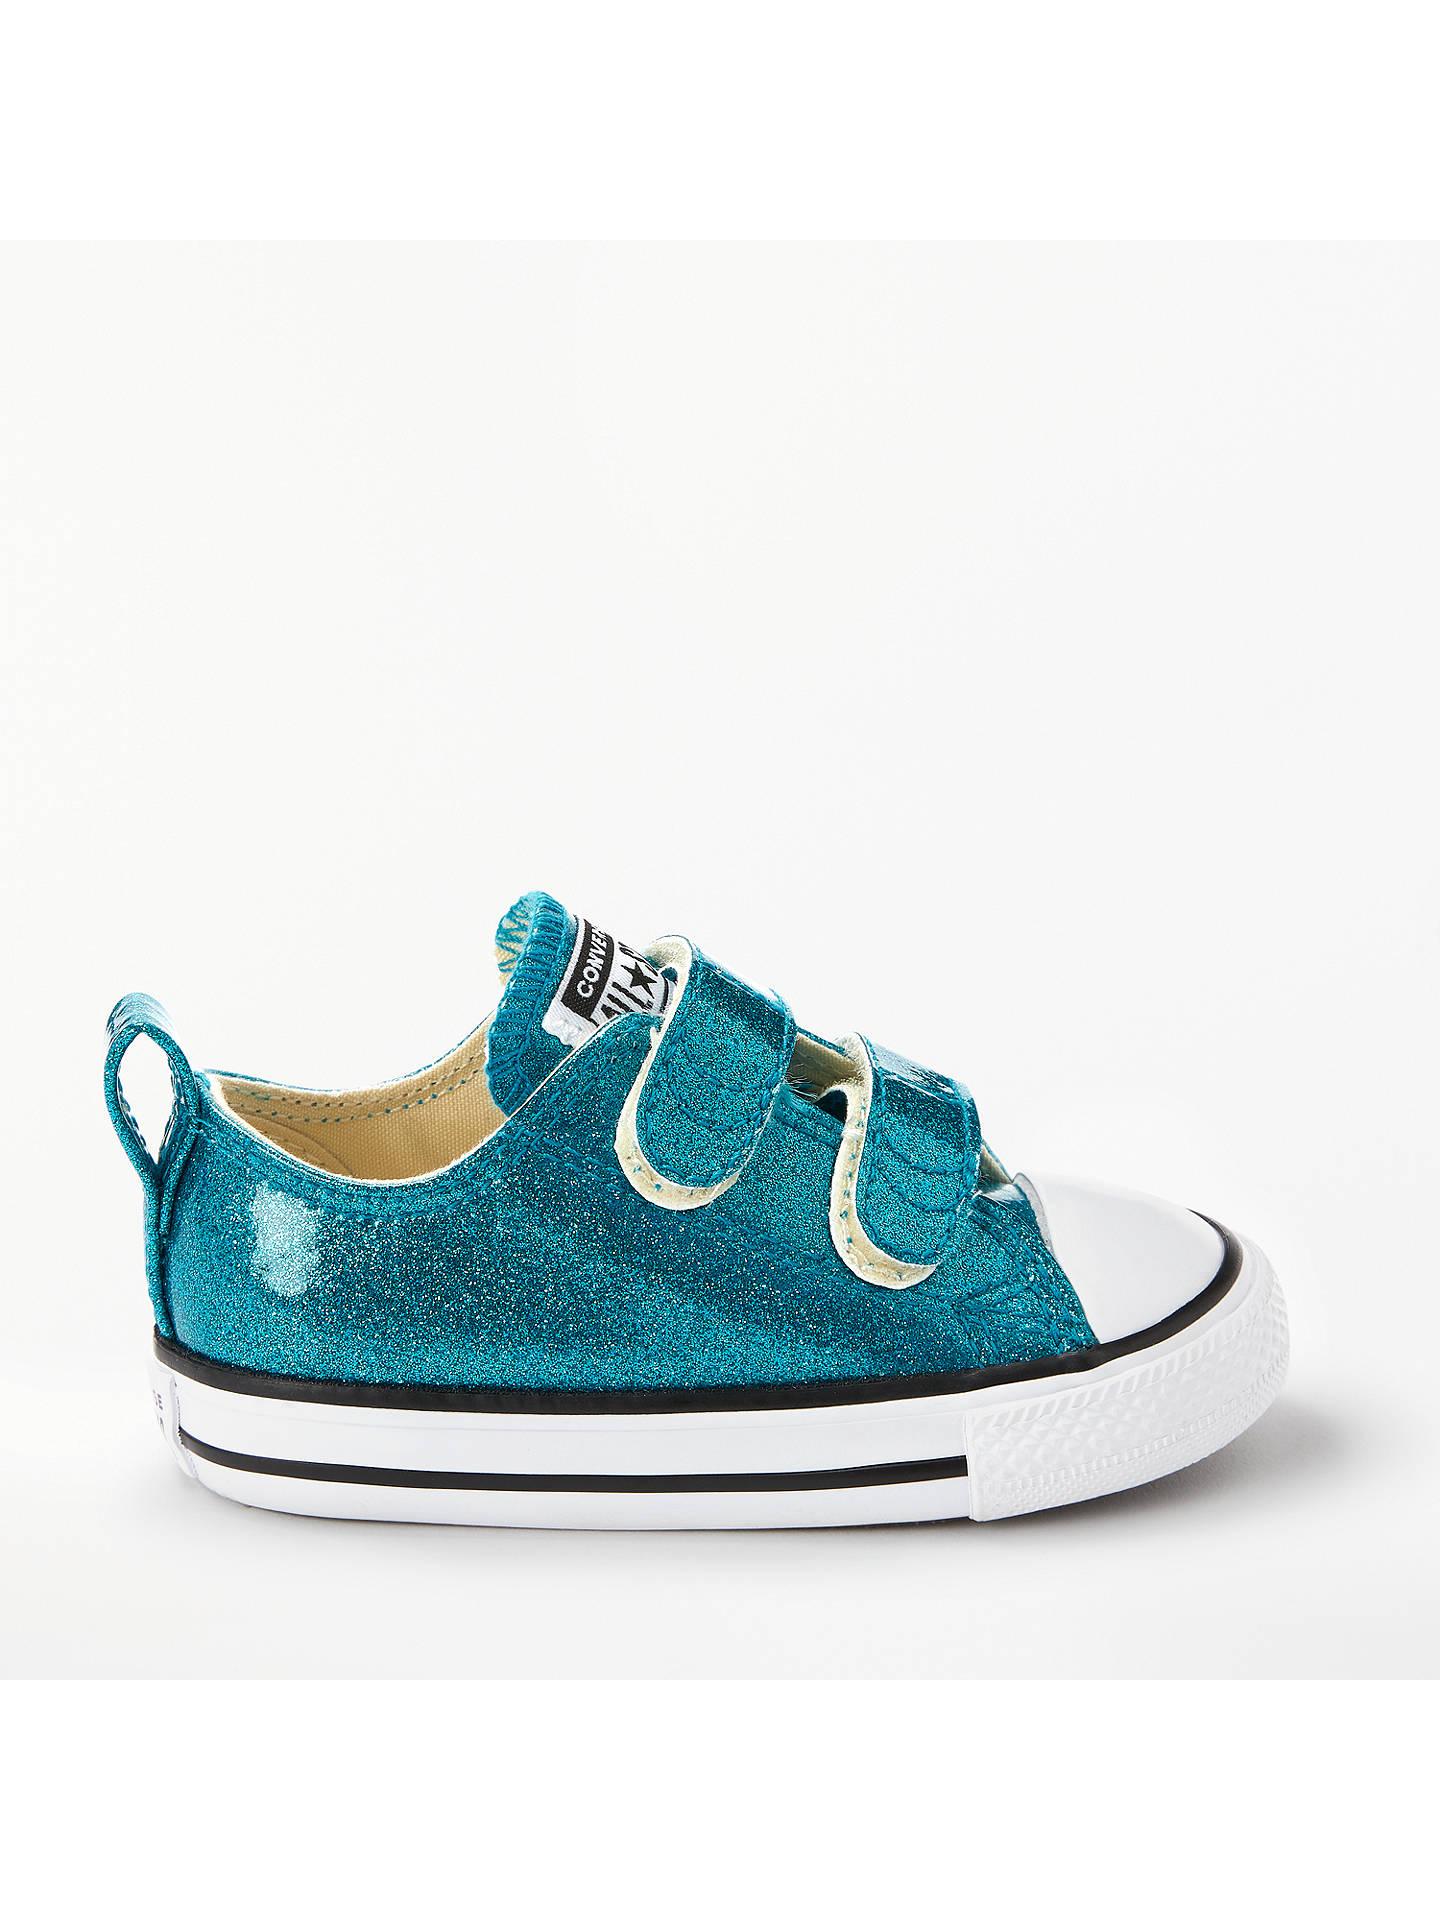 db3ec67e9f5a Converse Children s Chuck Taylor All Star Ox Riptape Trainers at ...